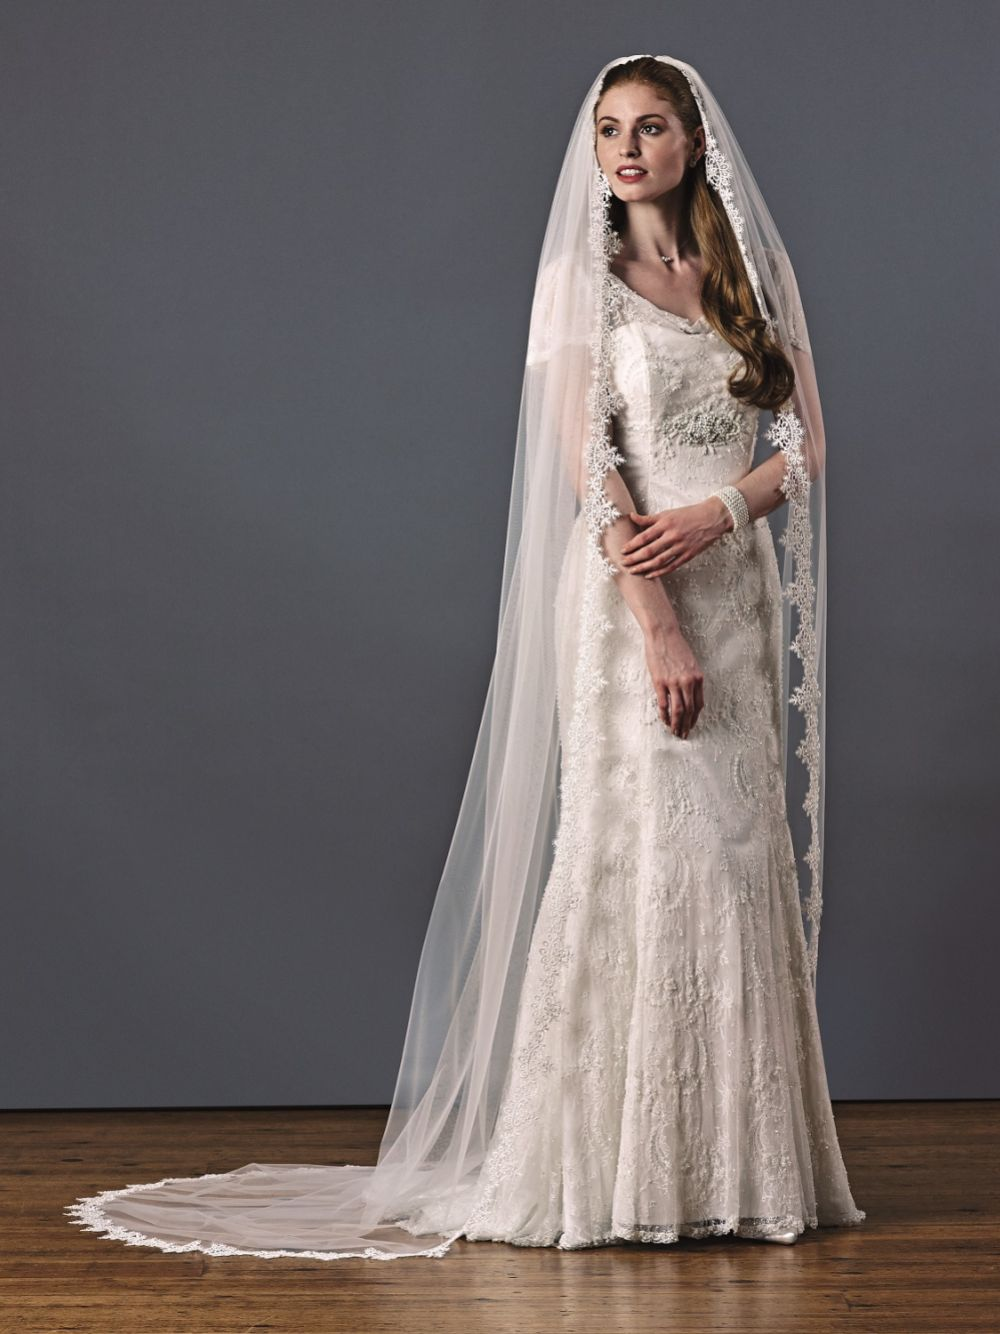 Joyce Jackson Claremont Single Tier Spiked Lace Edge Veil